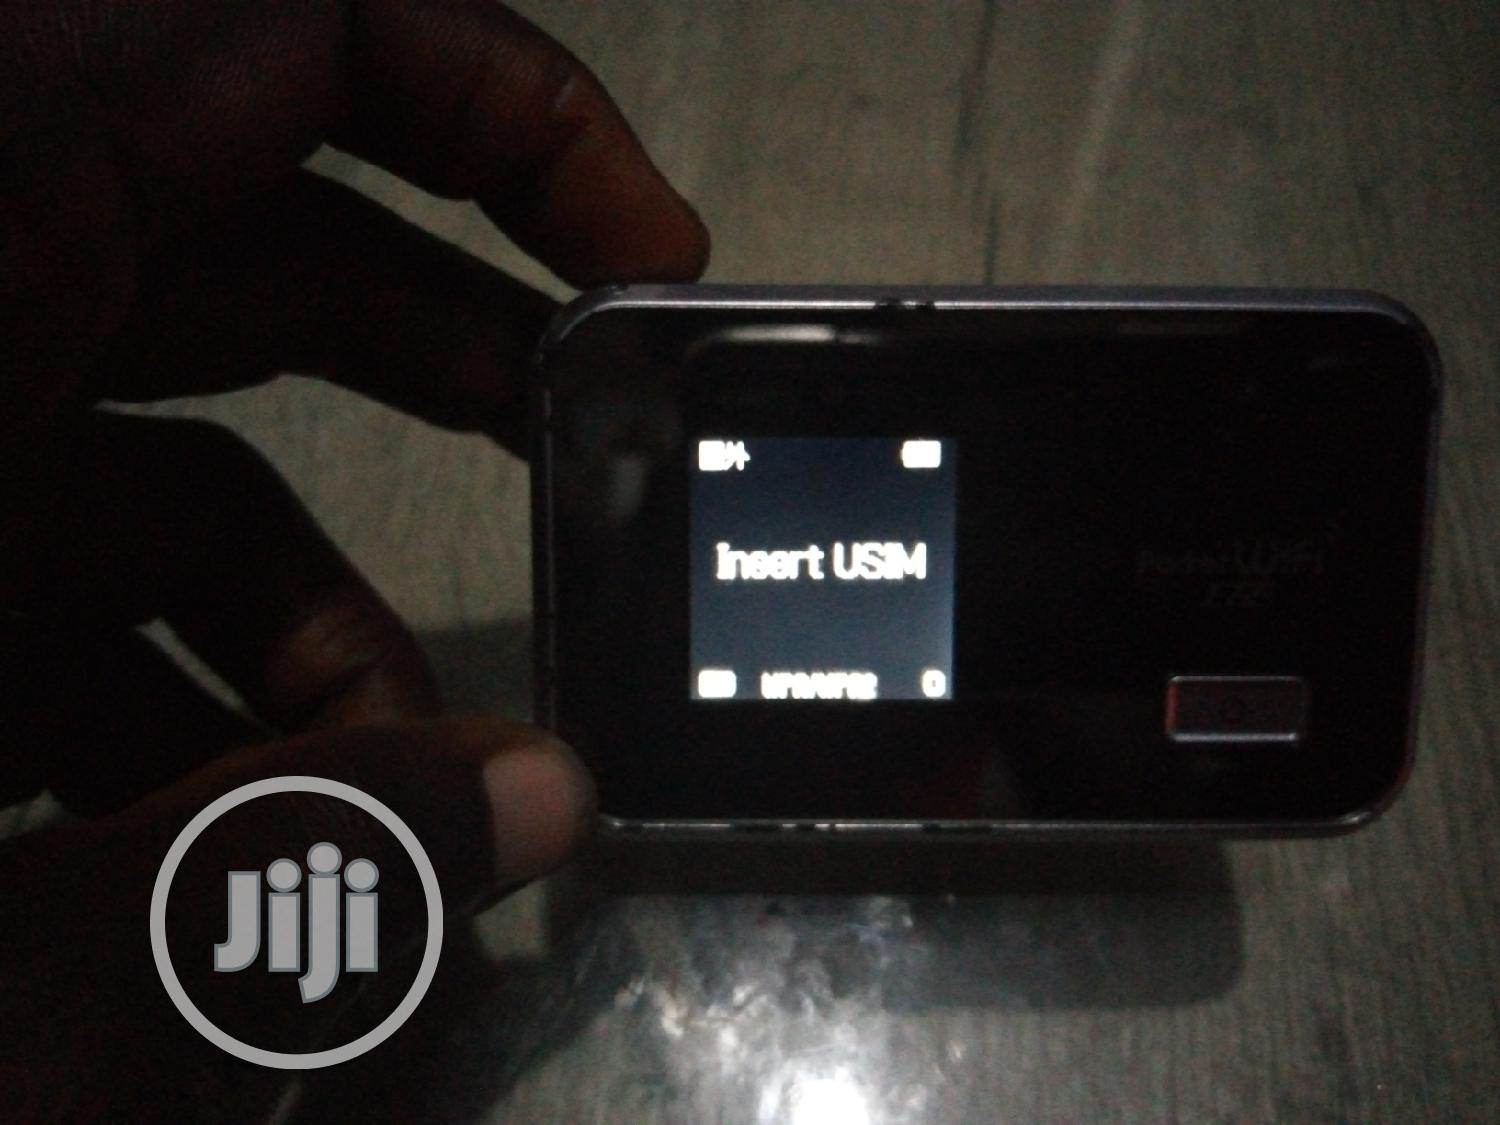 Pocket Wi-fi LTE For Internet Access